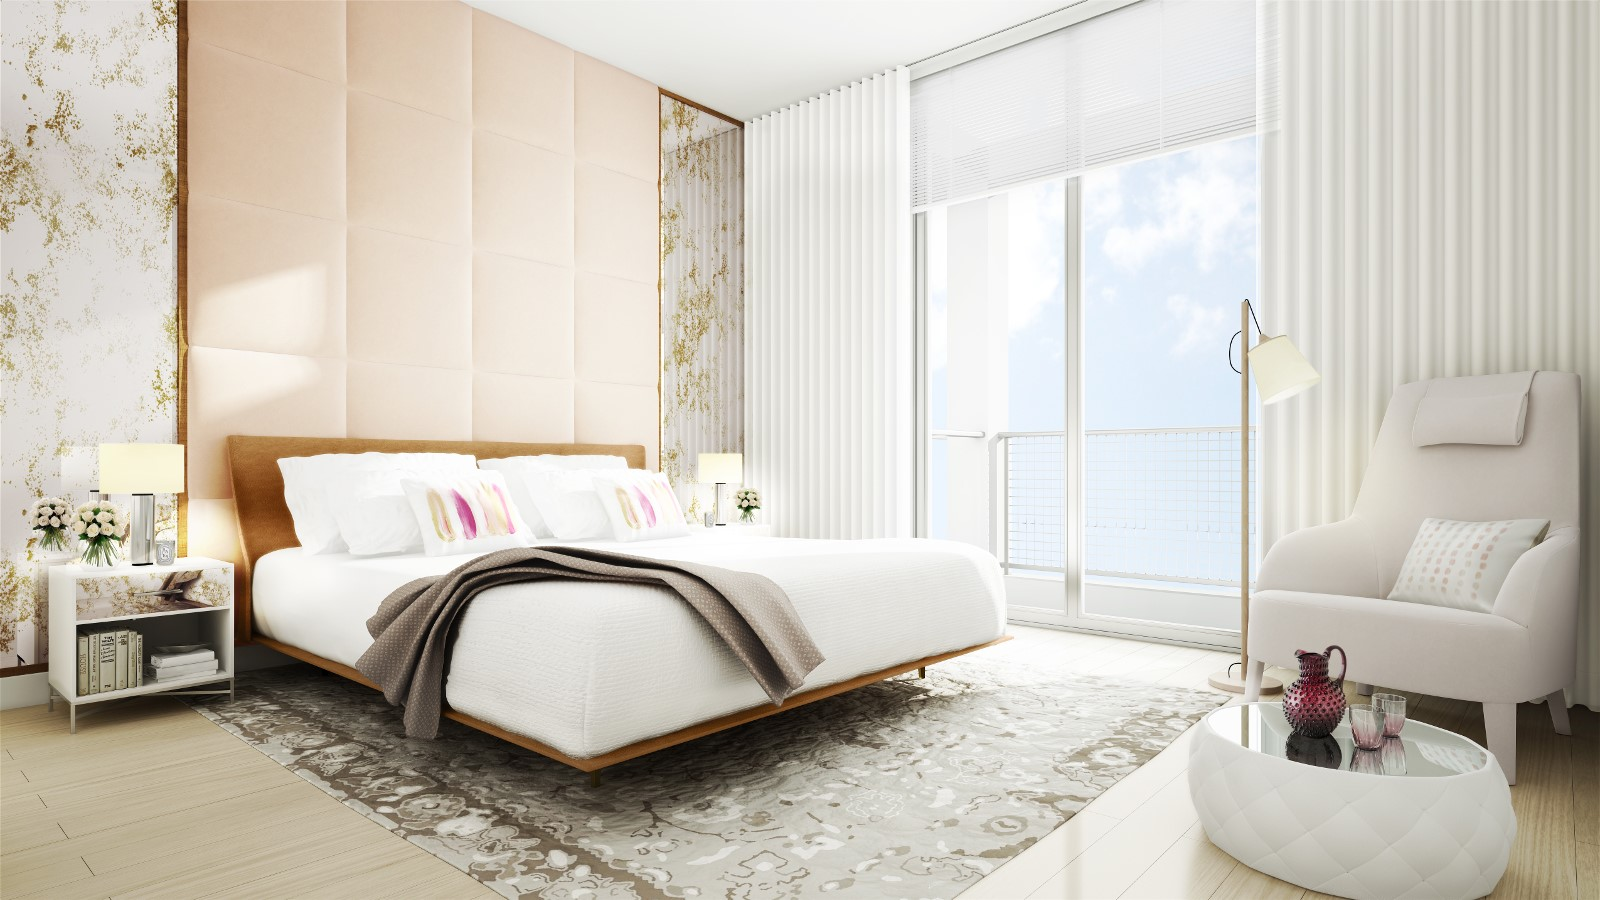 Metropica_Bedroom_Nature_HR.jpg